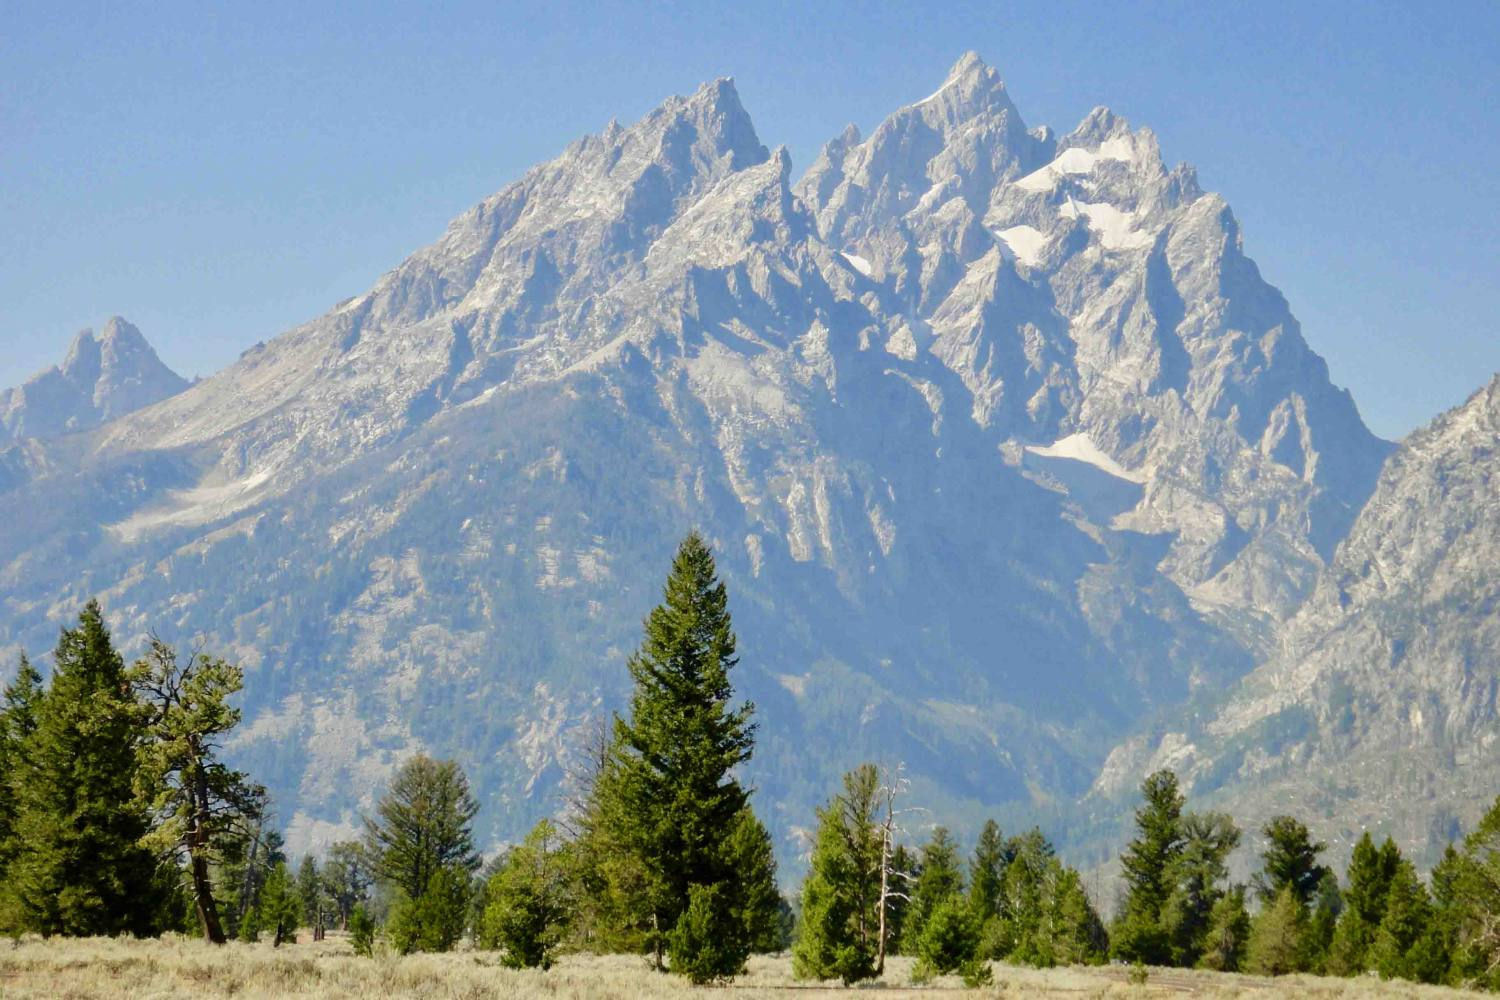 Exploring Our Own Backyard The National Parks Of Montana And Wyoming Passions And Places